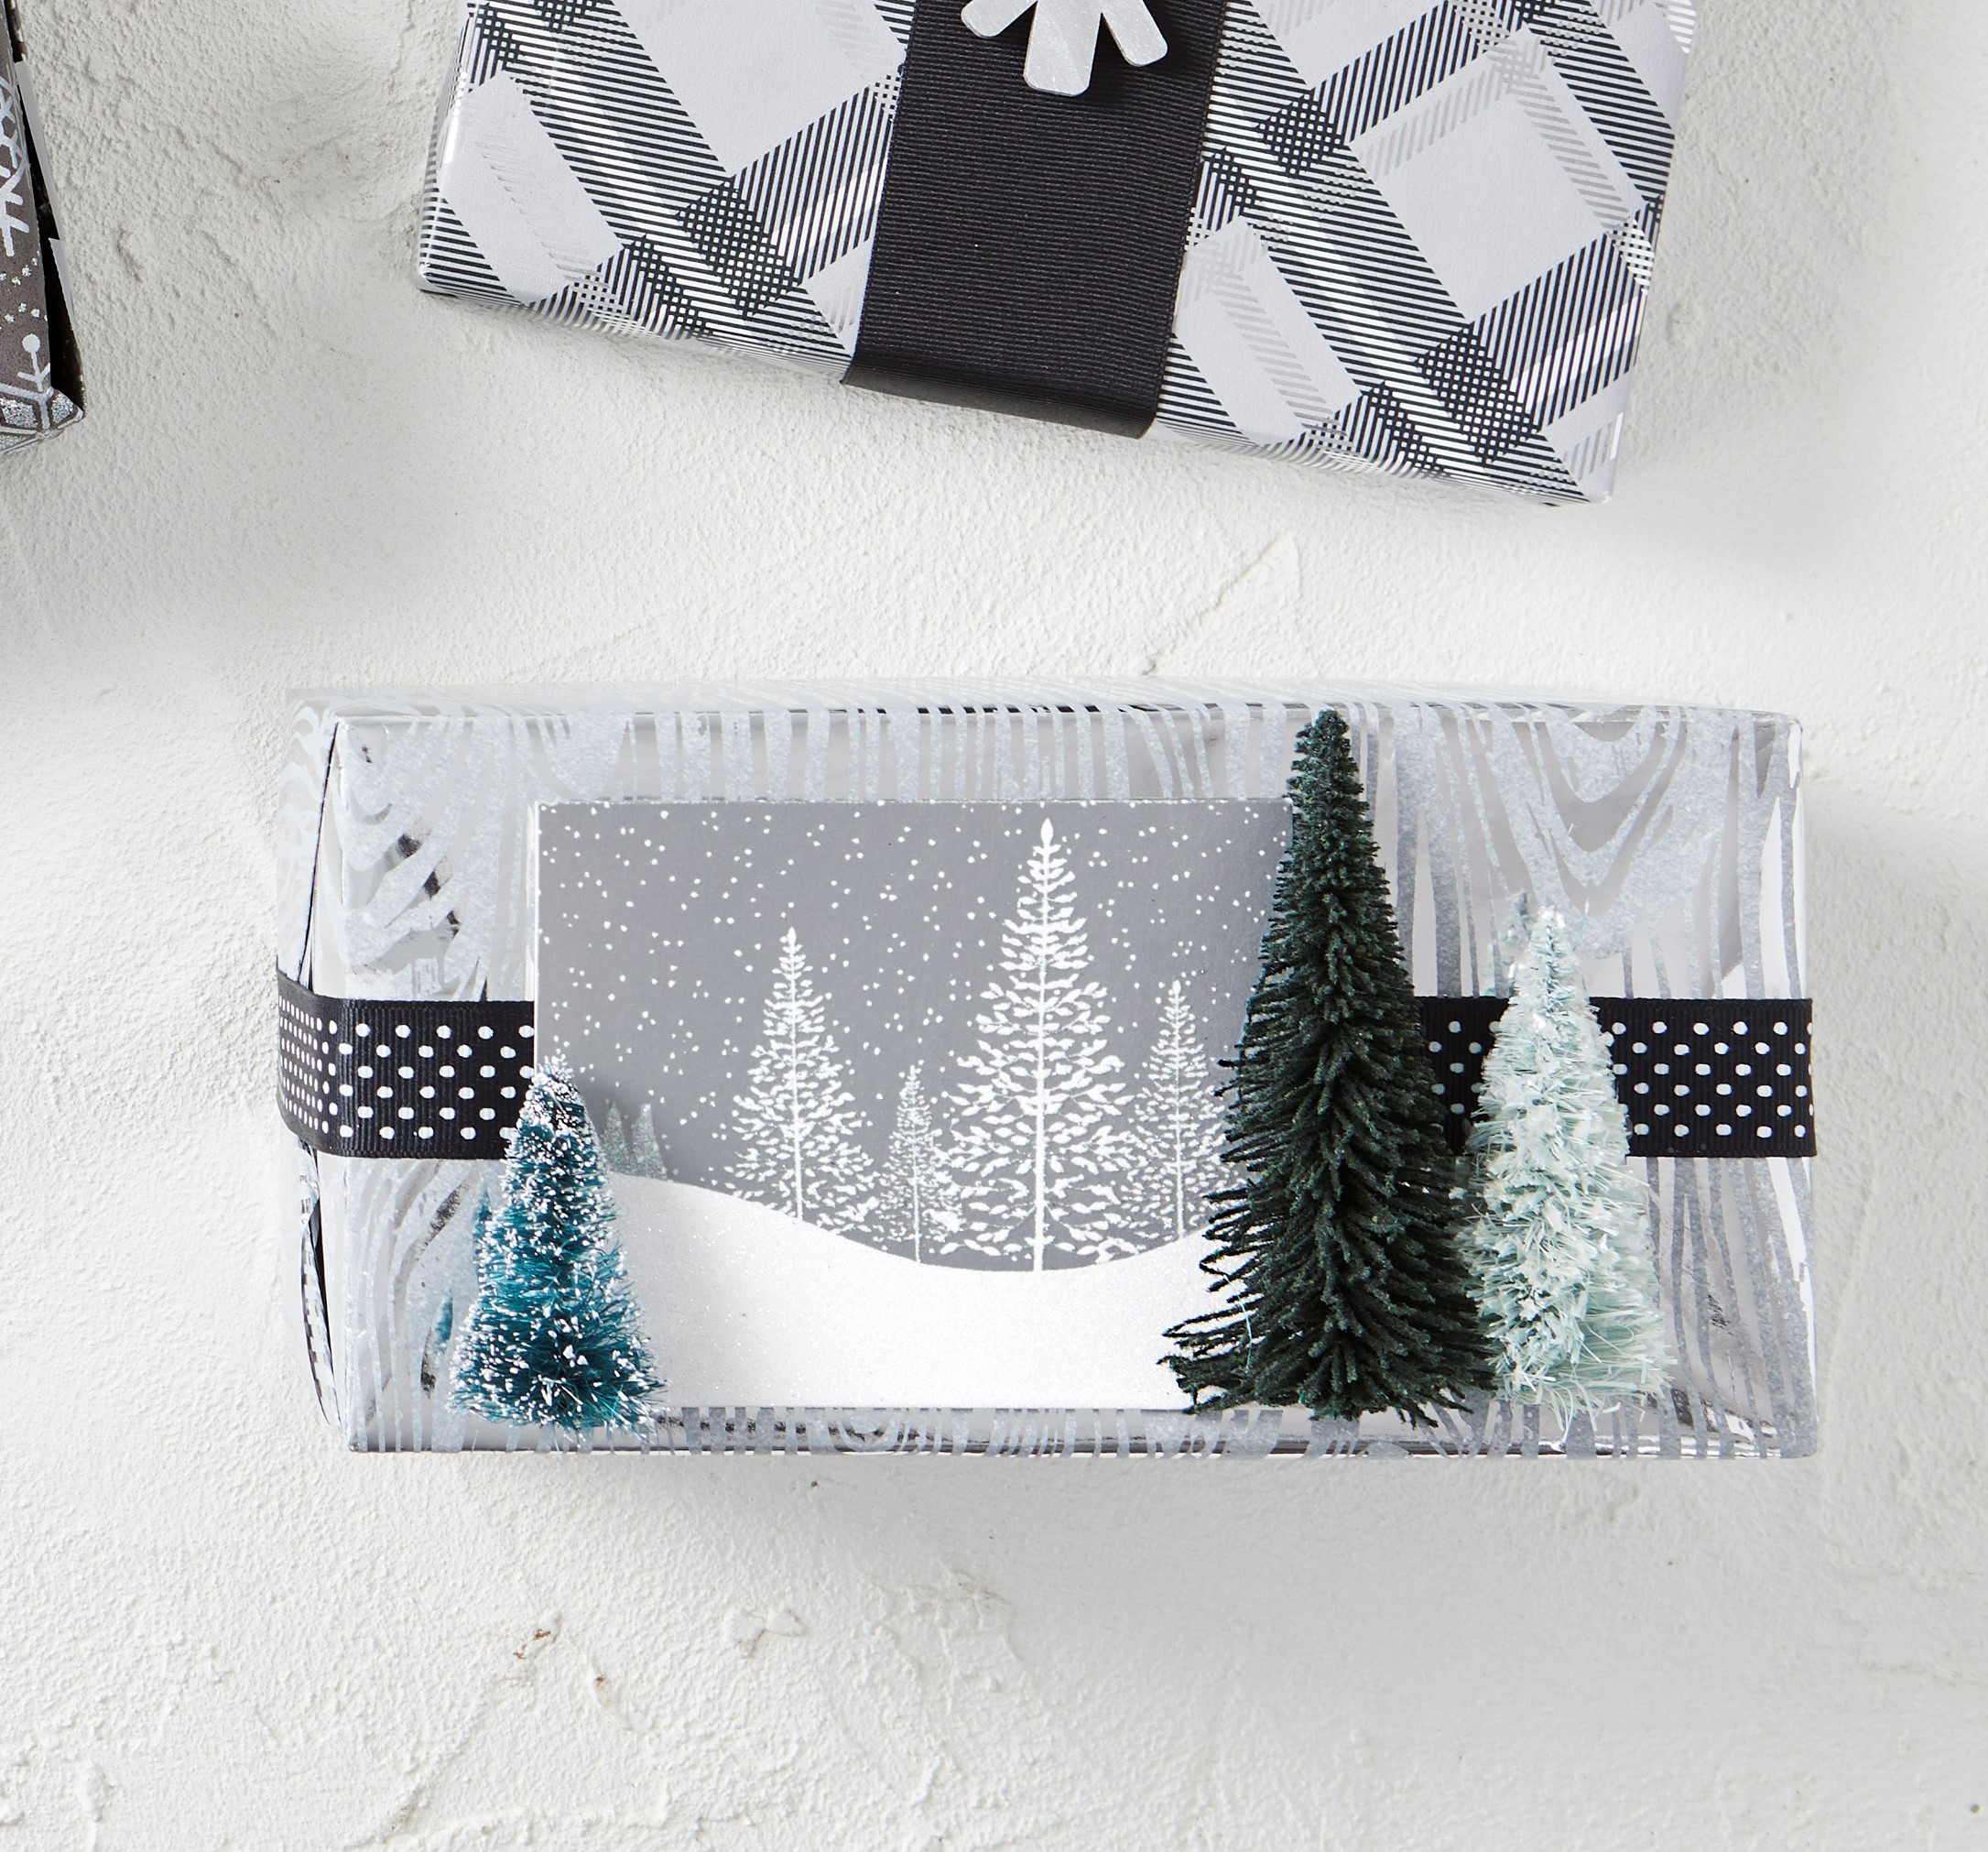 Create a mini holiday scene atop your wrapping paper. Choose materials that speak to the woodland theme: woodgrain paper, ribbon with dots of falling snow, a card that sets the background with snow and forest, and mini bottle-brush trees that pull the scene forward.Wrap your gift and add a band of ribbon down the center lengthwise. Trim the ends so they just meet, and use hot-glue to hold them in place at the center front. (Any overlap might create a bump under your card.) With double-stick tape, attach a holiday card, then hot-glue bottle-brush trees to the left and right of the card.